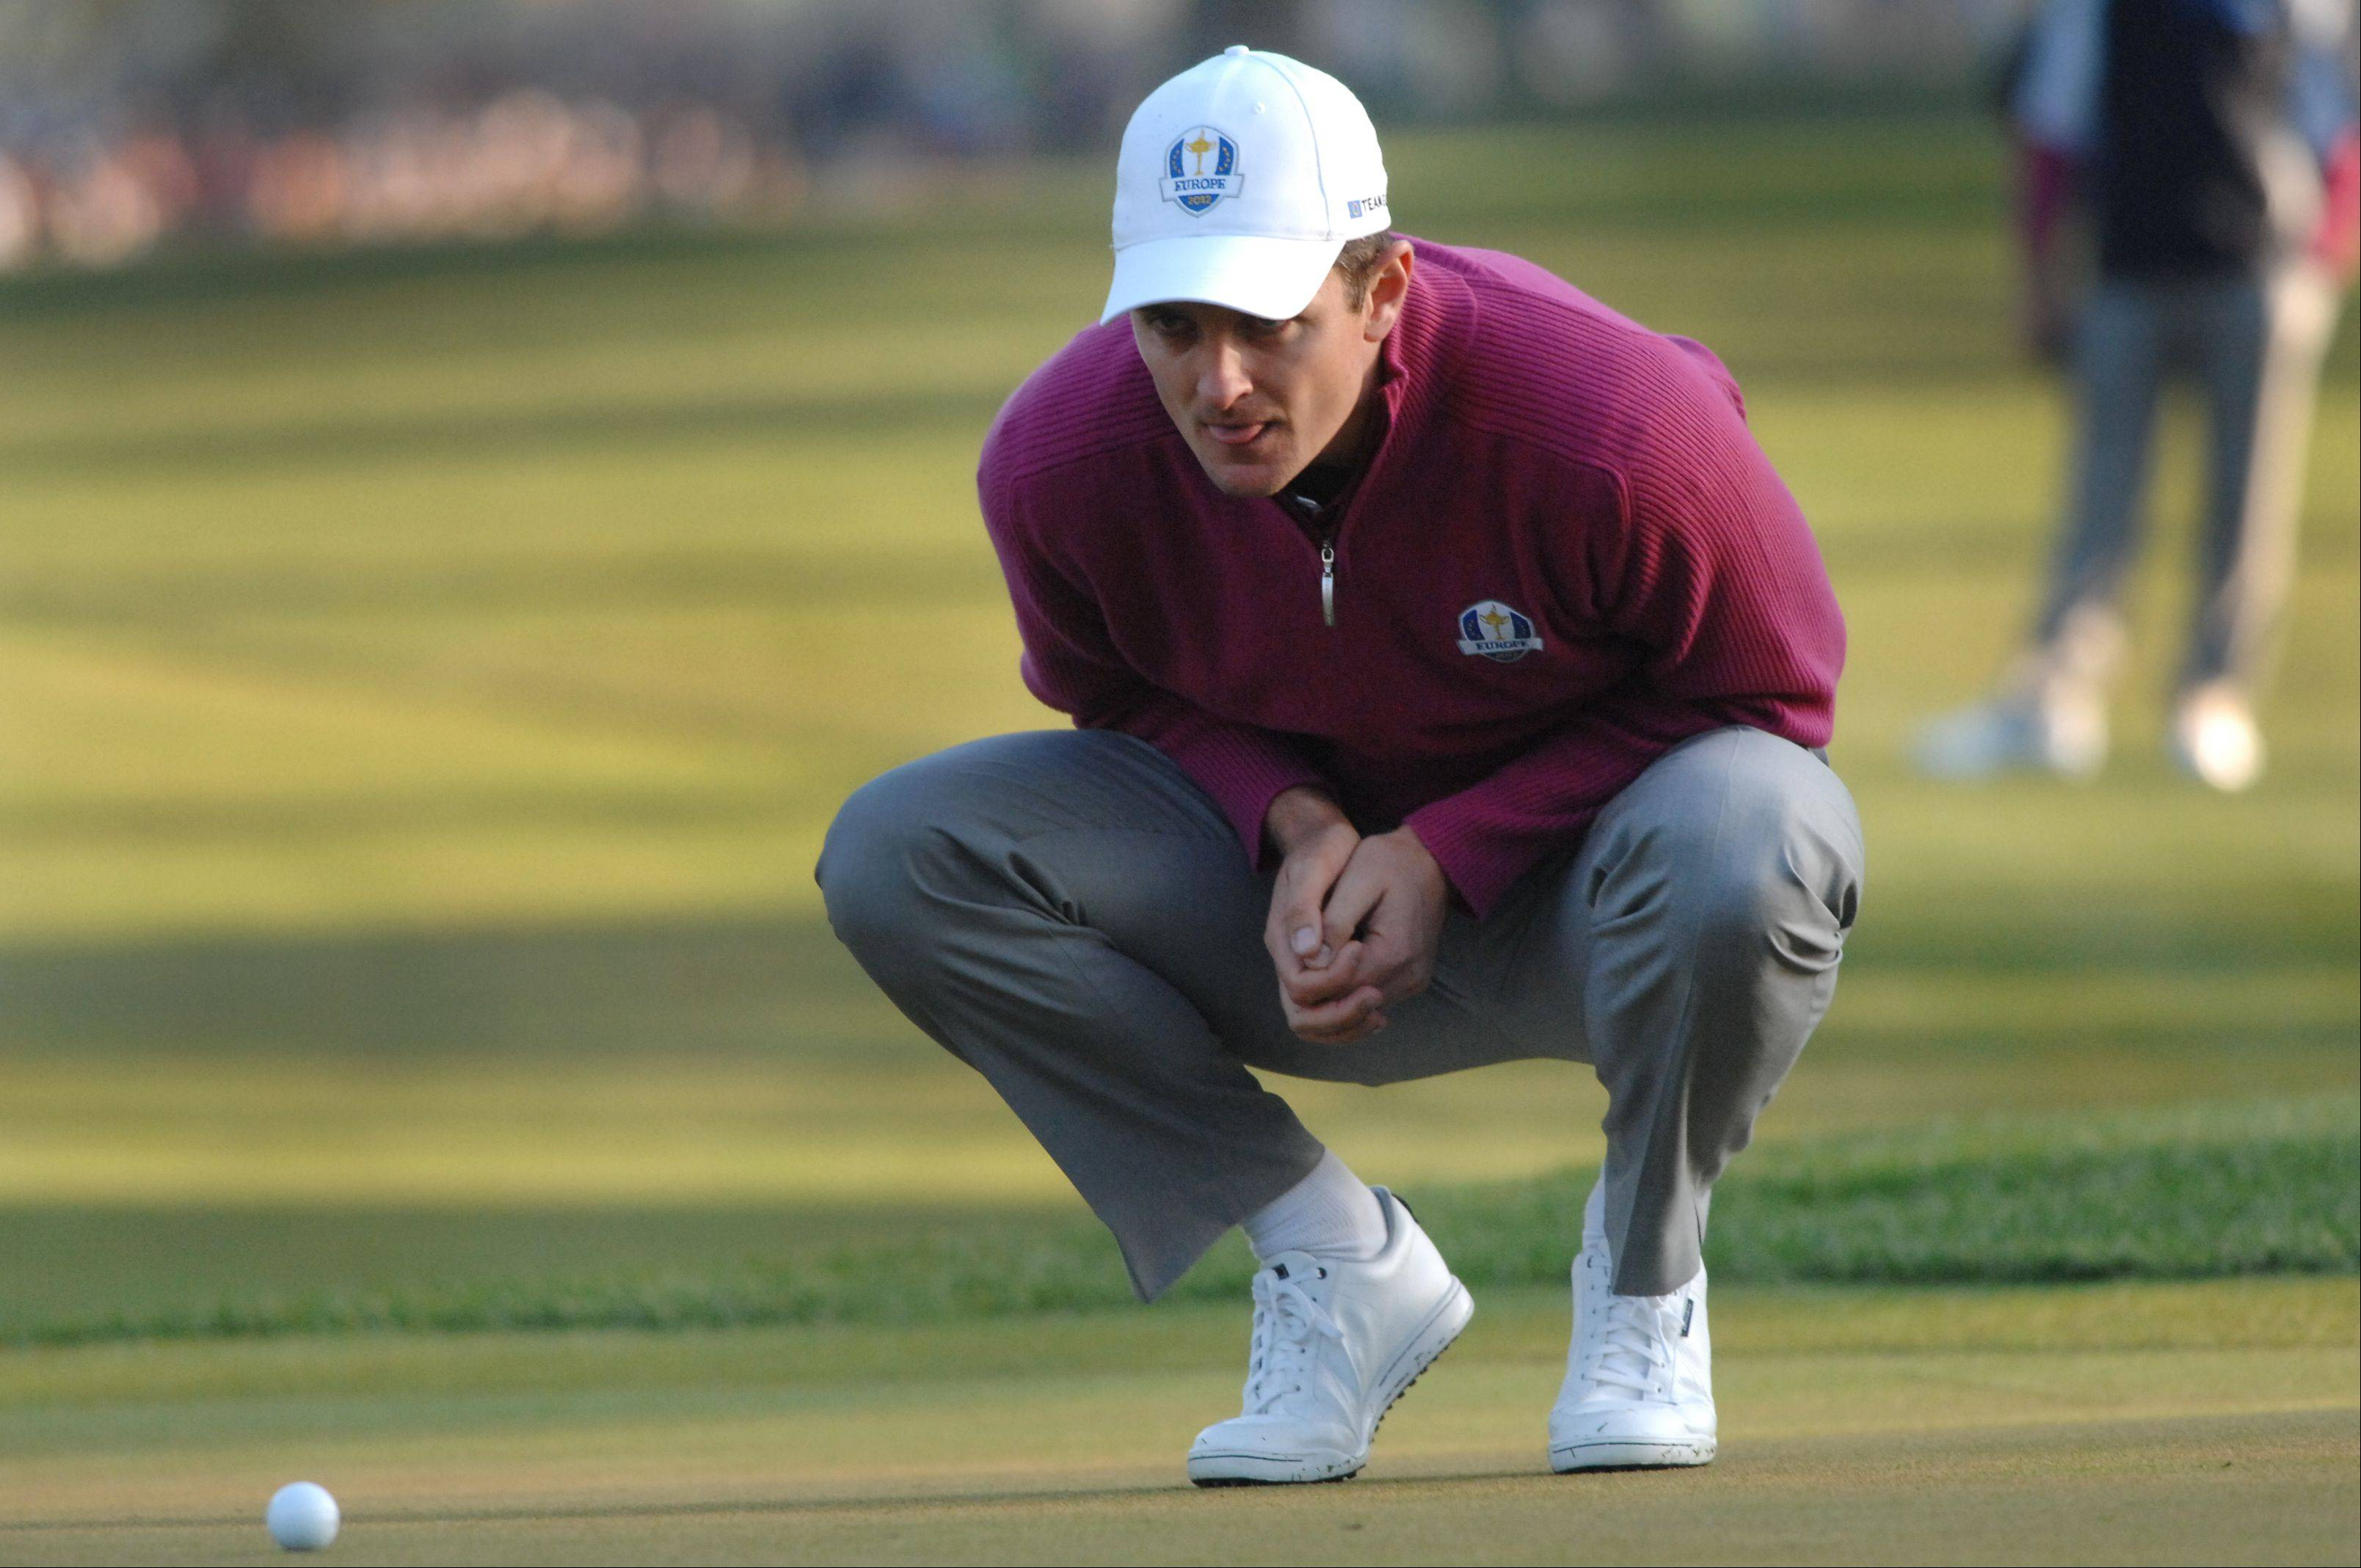 Justin Rose of team Europe lines up his putt on the first hole Saturday morning during day 2 of the 2012 Ryder Cup at Medinah Country Club.